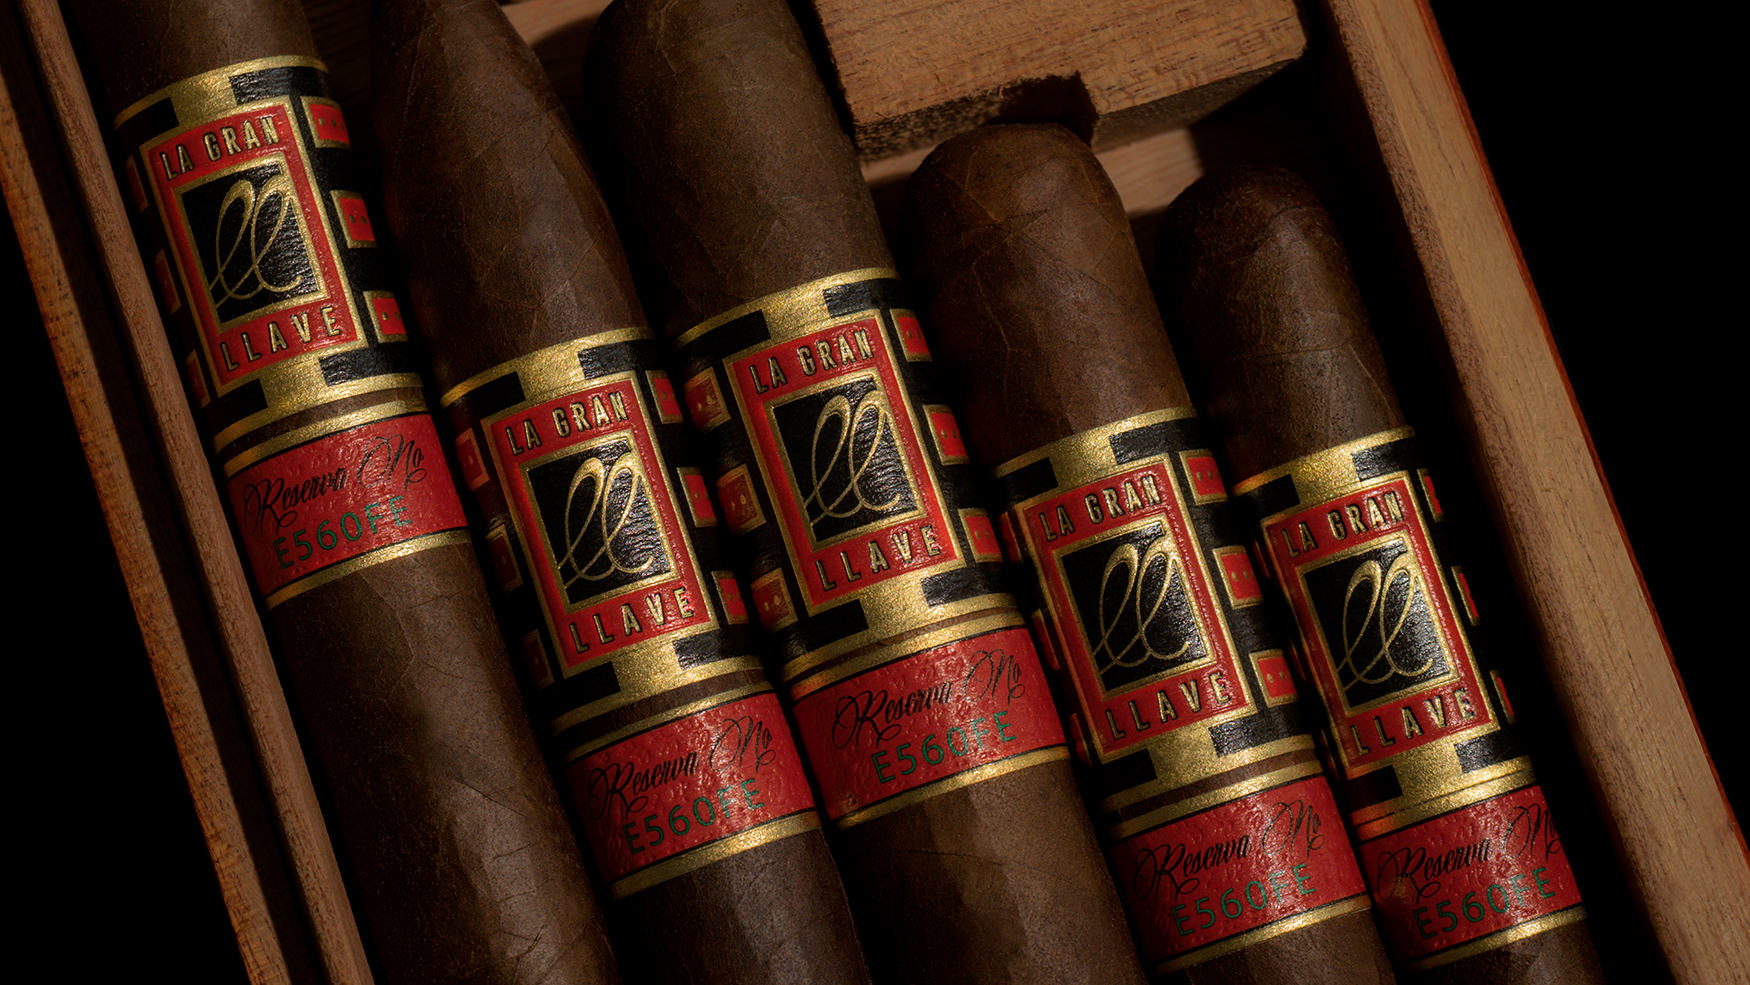 Cigar News: A.J. Fernandez Cigars Confirms Acquisition of La Gran Llave Brand